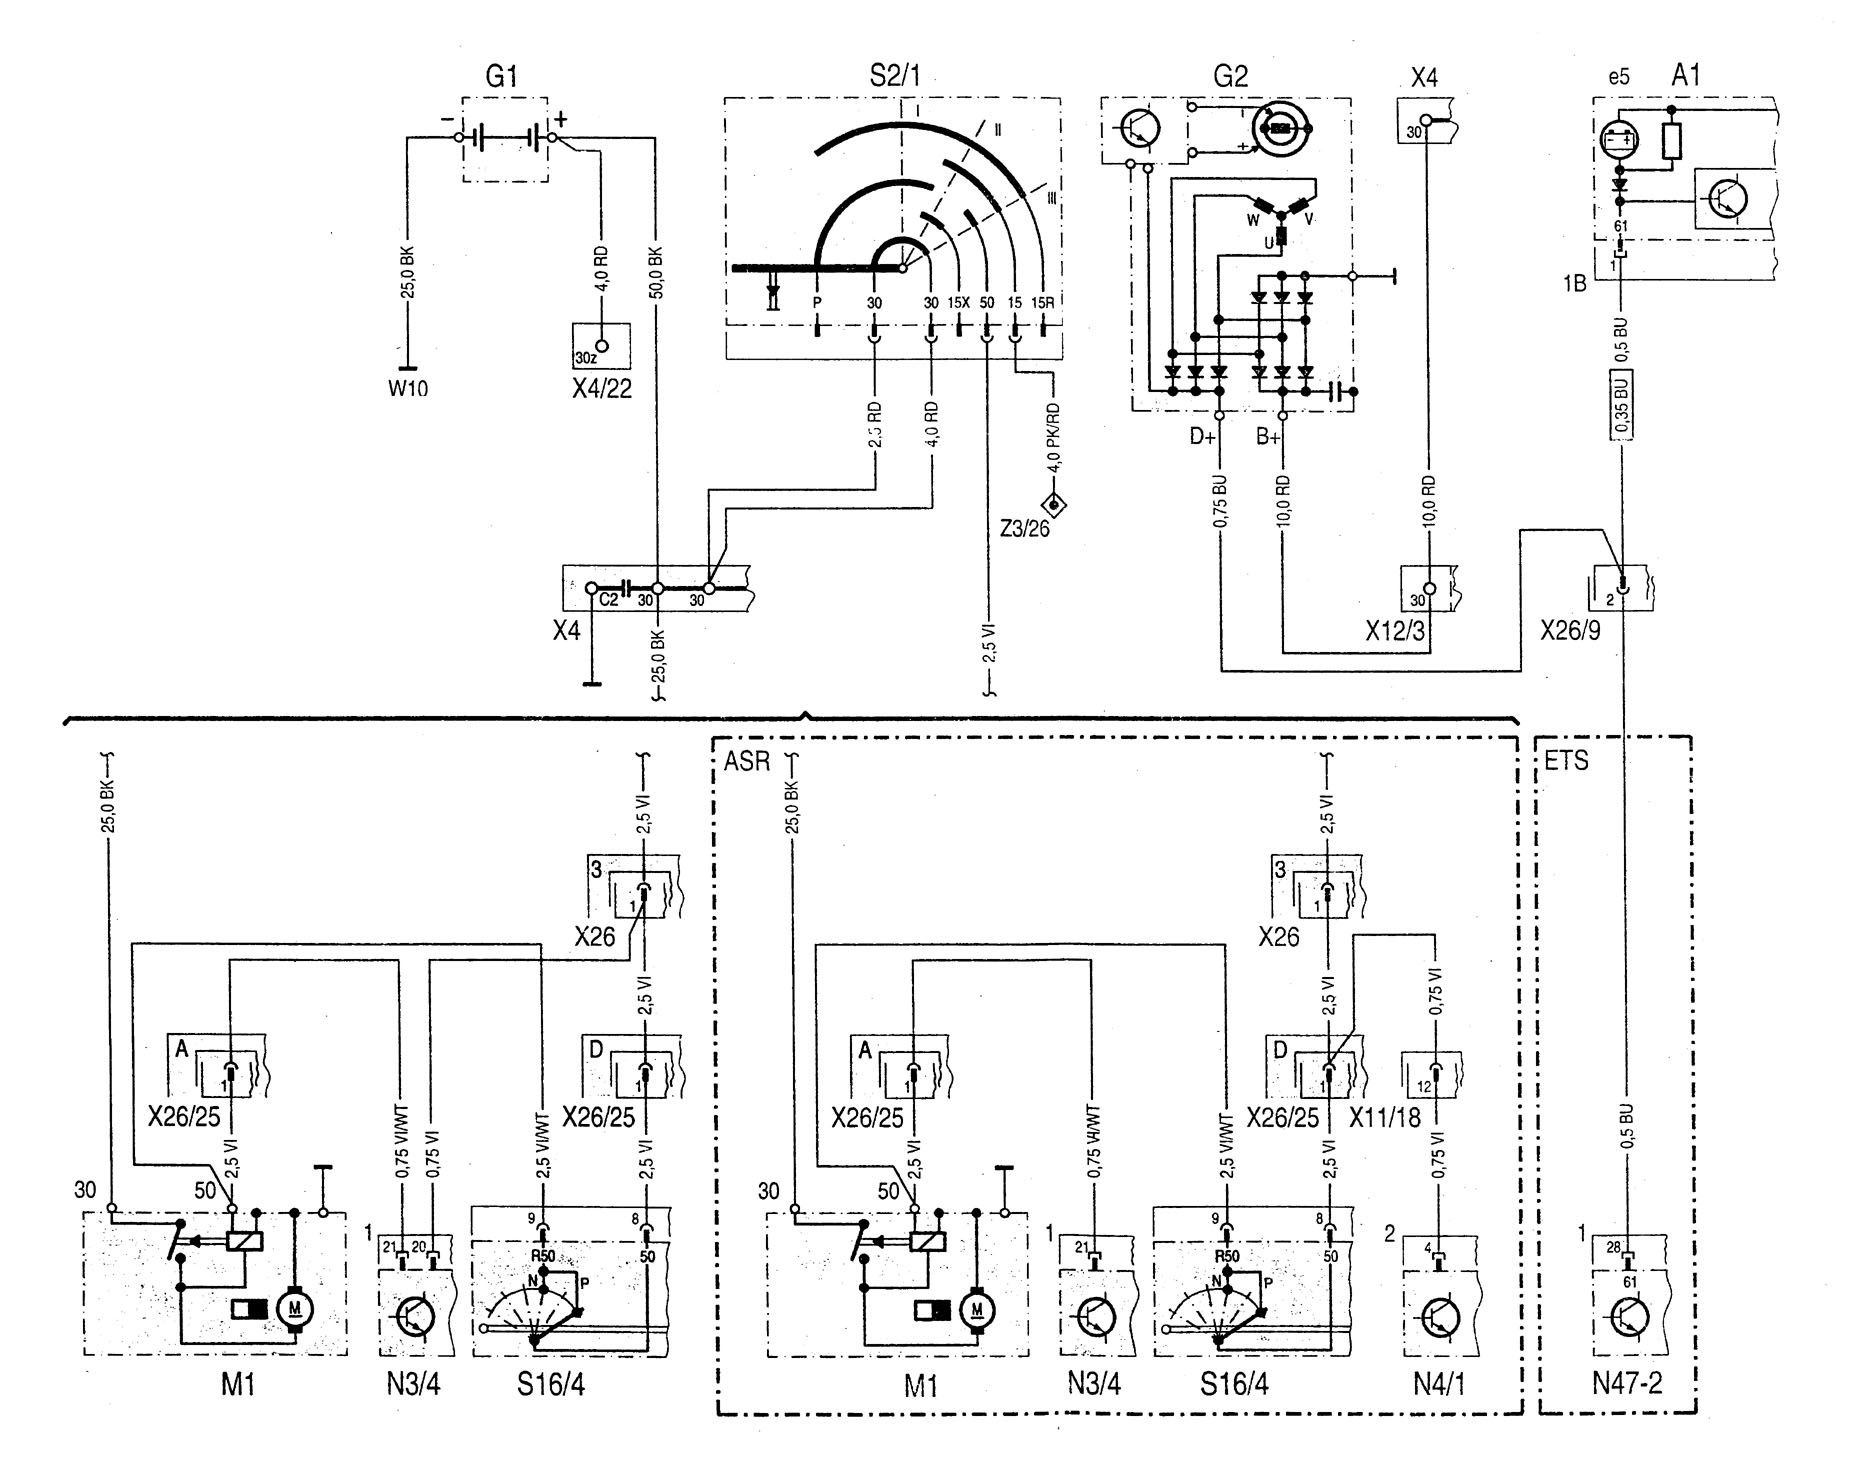 Mercedes Benz R129 Wiring Diagrams Wire Center A160 Diagram C220 Enthusiast U2022 Rh Rasalibre Co Relay 2000 Sl500